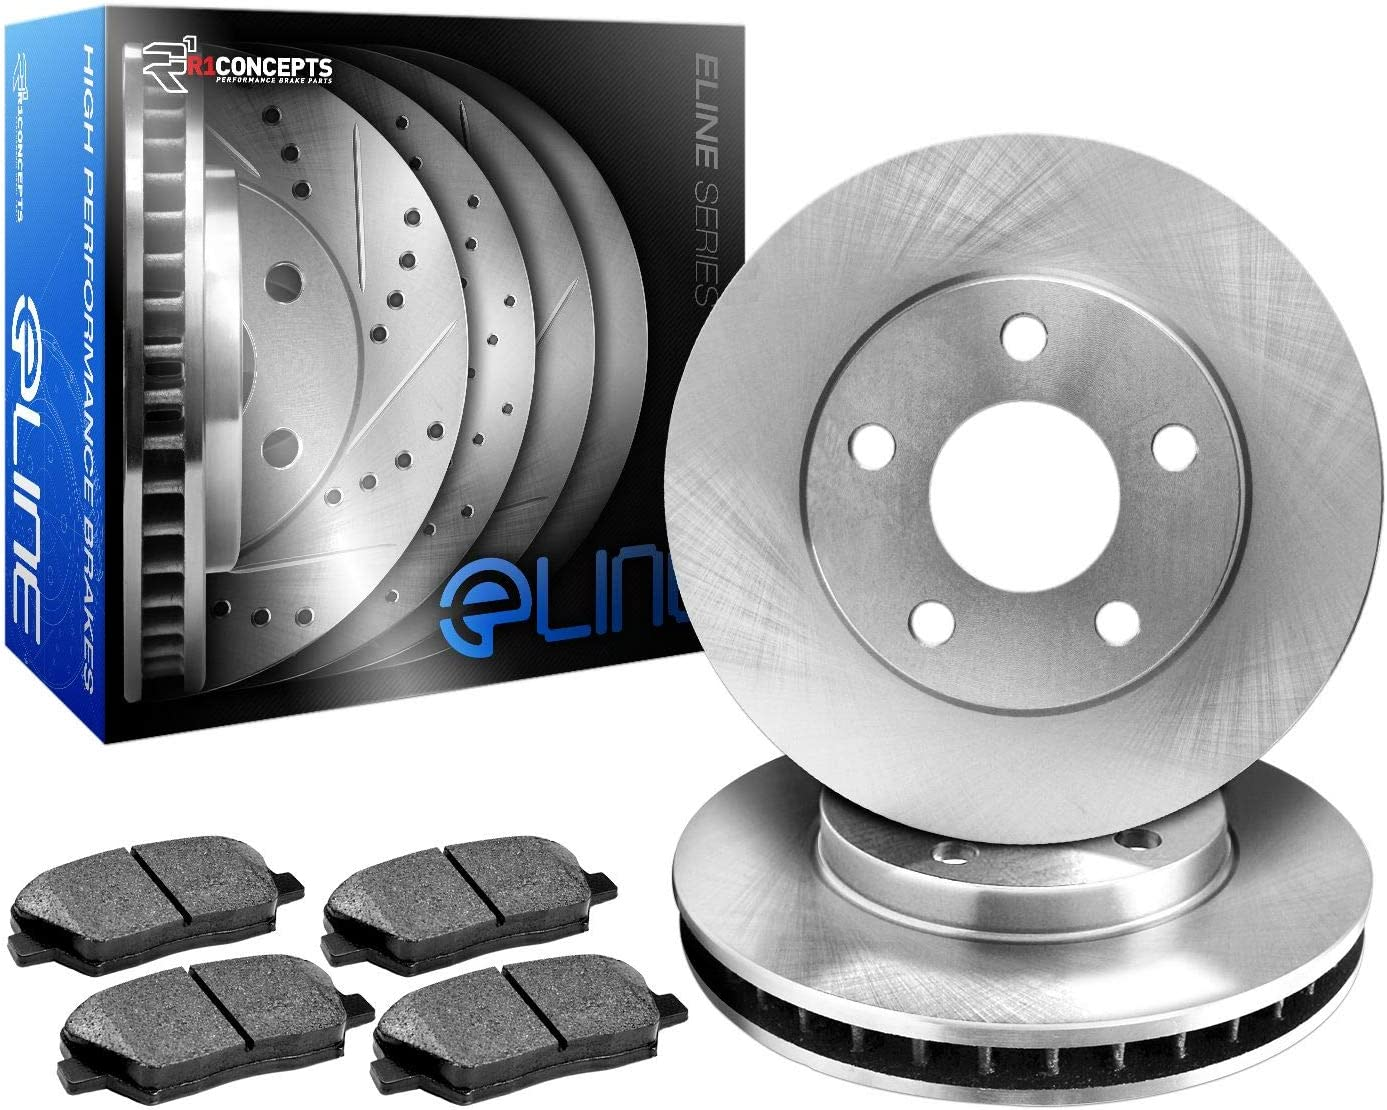 Front R1 Concepts KEOE10172 Eline Series Replacement Rotors And Ceramic Pads Kit